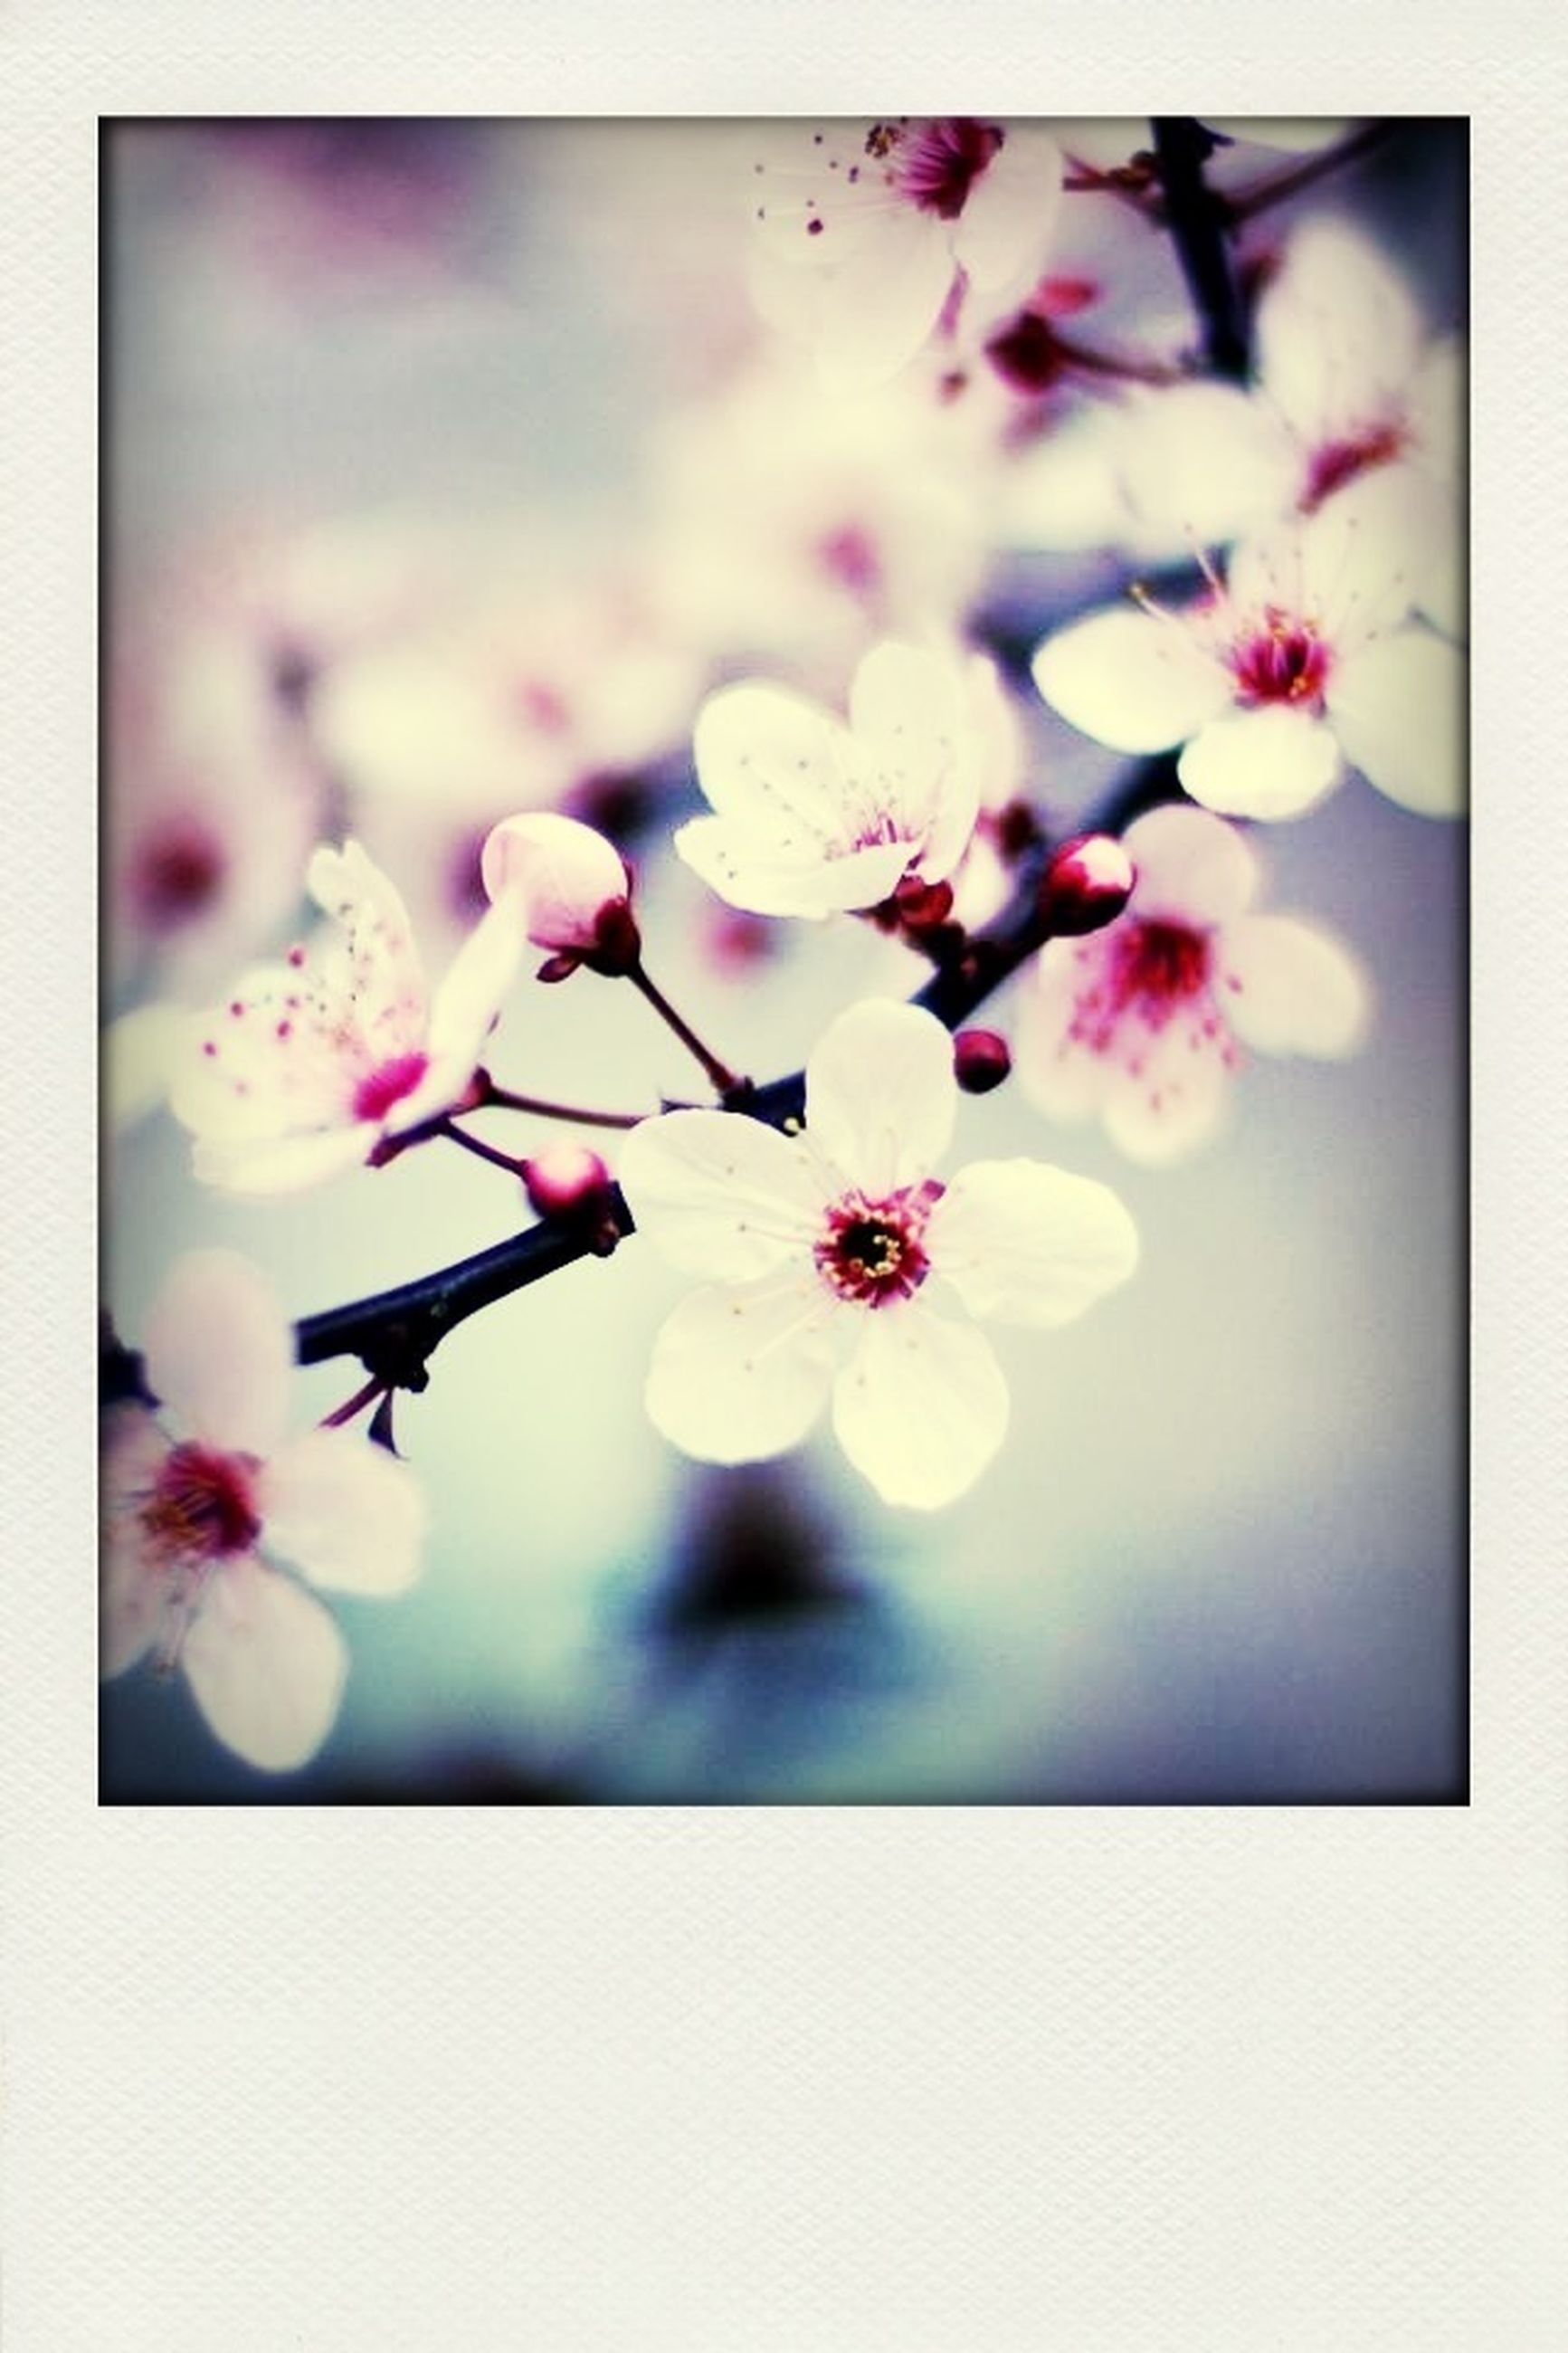 flower, freshness, fragility, transfer print, petal, beauty in nature, growth, auto post production filter, flower head, nature, close-up, blossom, blooming, in bloom, focus on foreground, selective focus, branch, pink color, cherry blossom, springtime